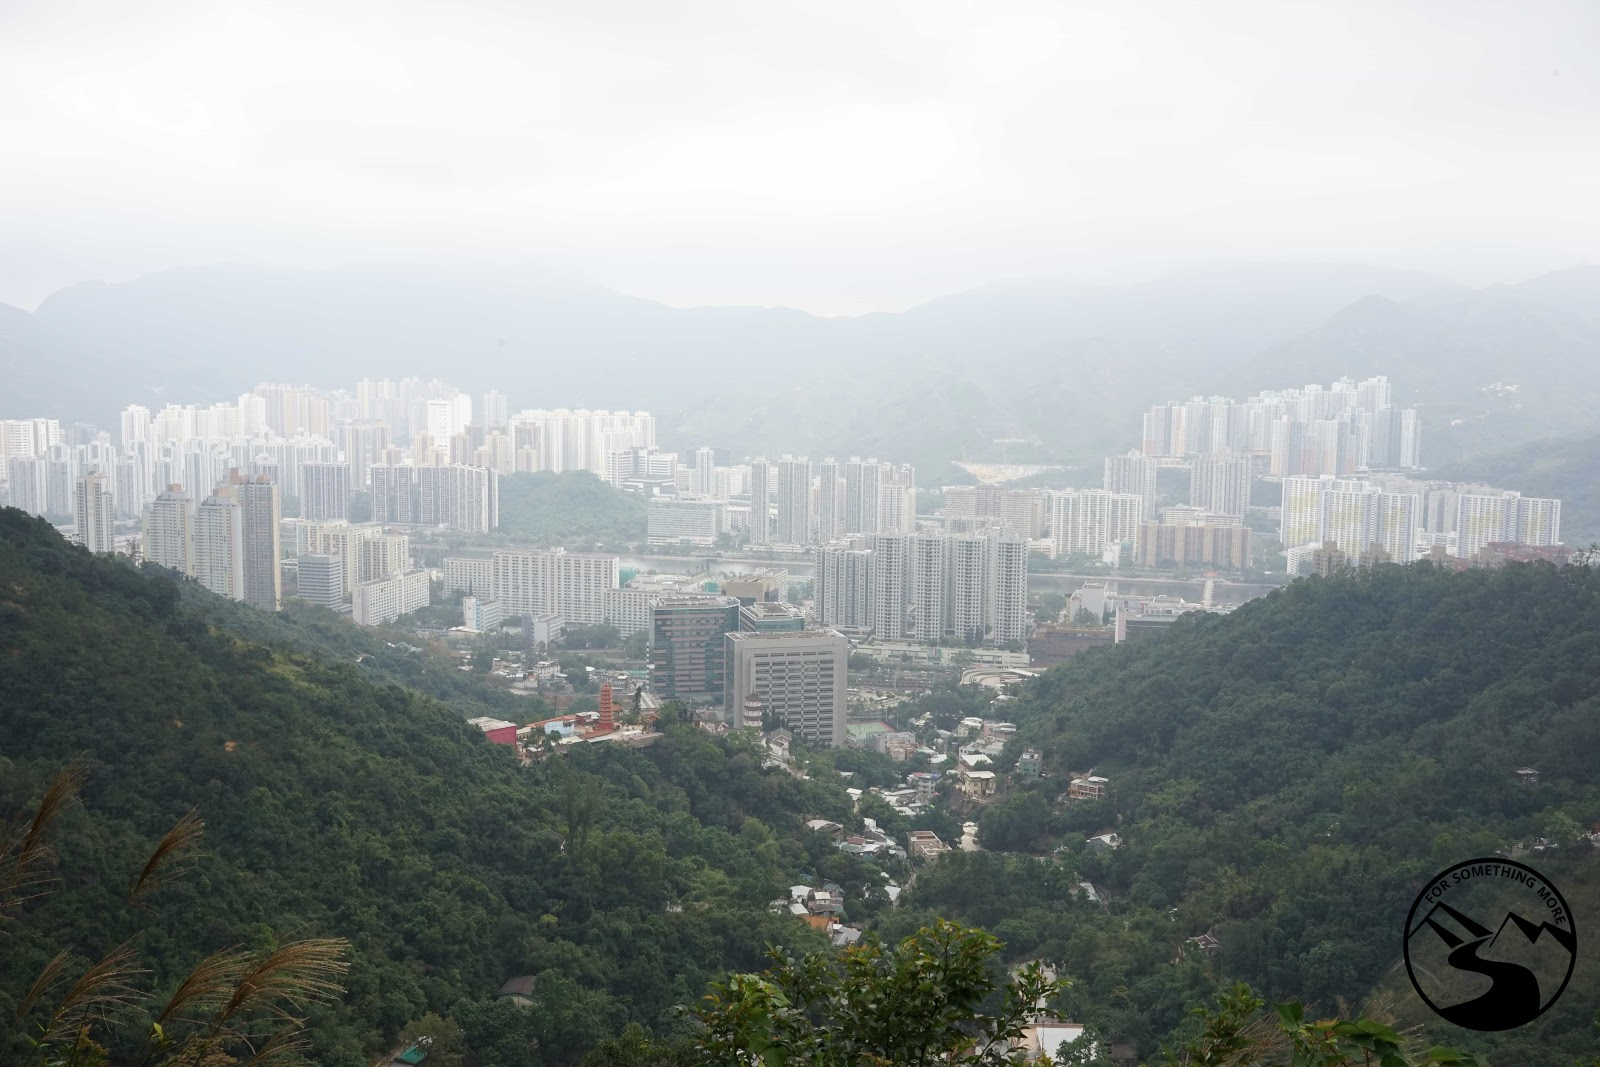 A view of Sha Tin from up high